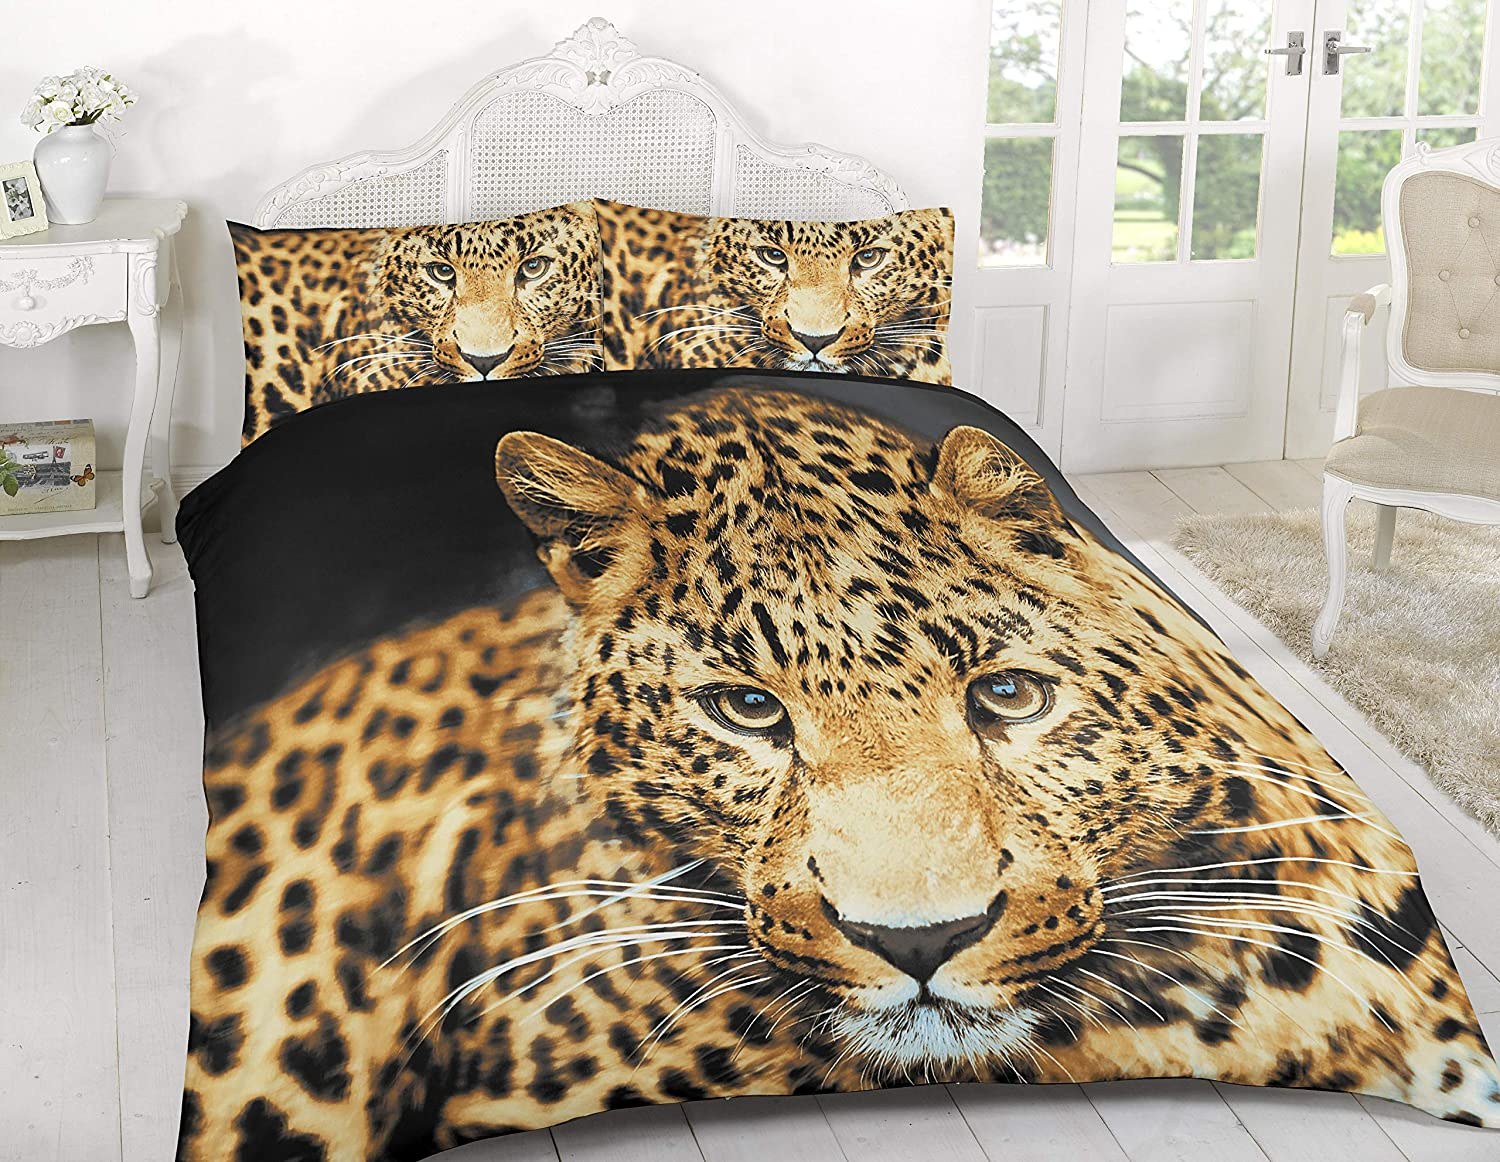 NEW 3D EFFECT DESIGN DUVET SETS QUILTY COVER BEDDING WITH PILLOW CASES